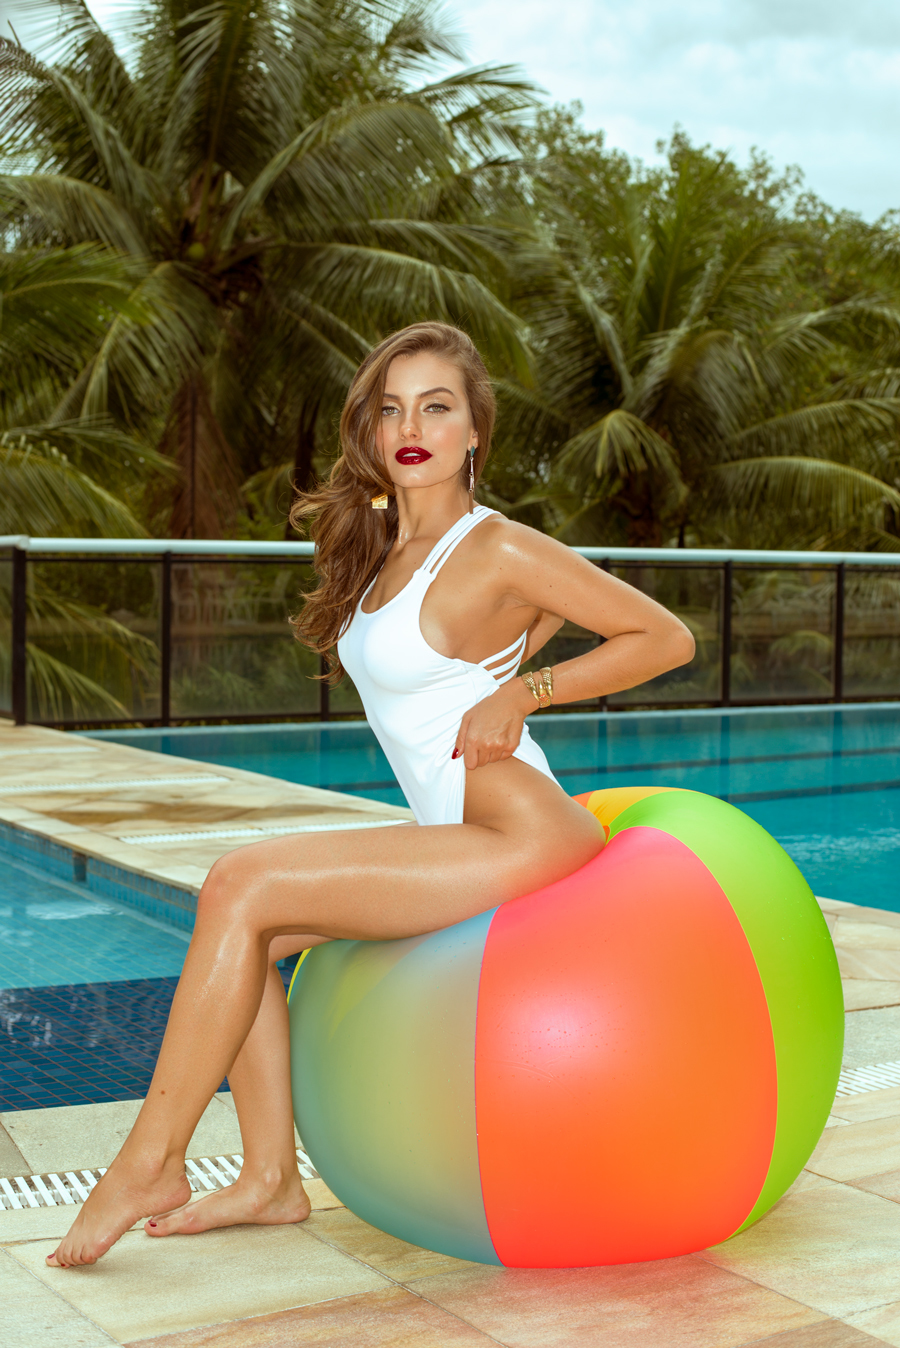 Colour Grading and Retouch - Pool Side Glamour / Post processing by Claire Rees Design / Uploaded 17th September 2019 @ 07:17 PM